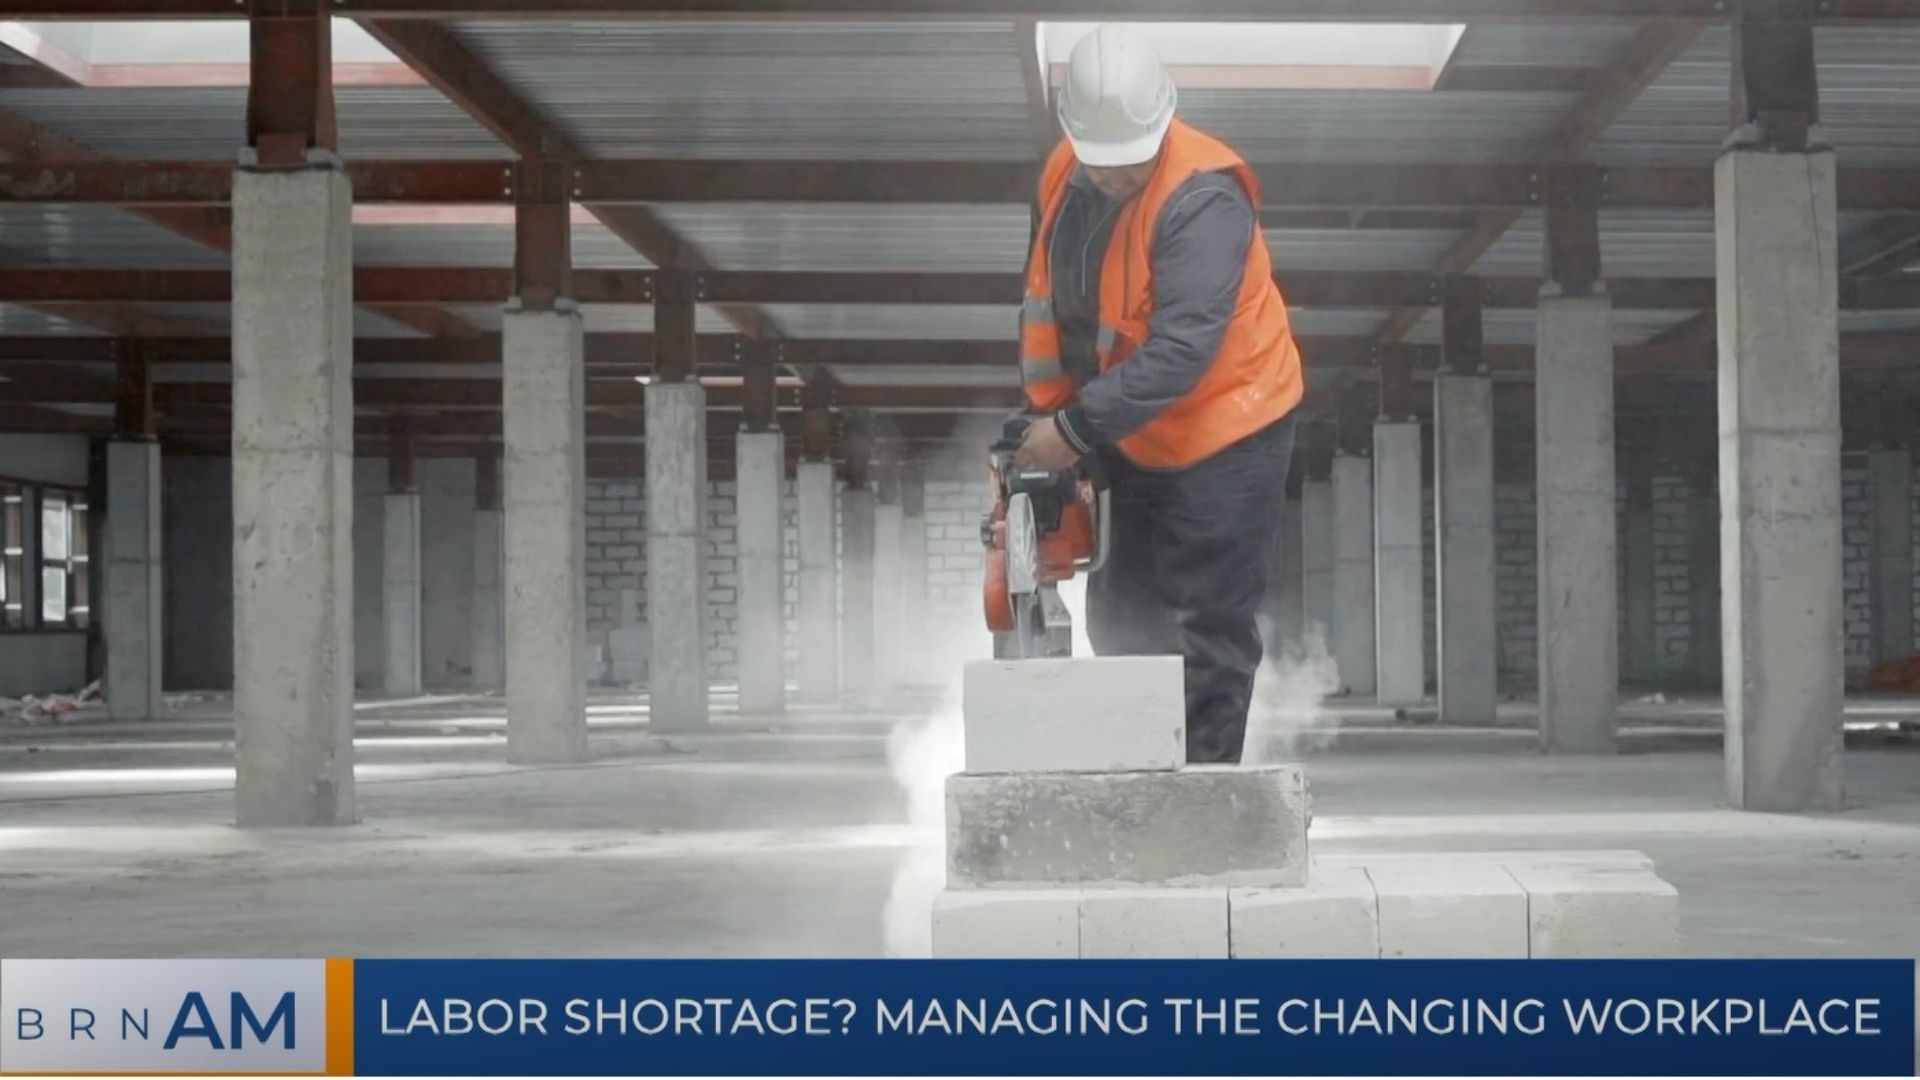 BRN AM   Labor shortage? Managing the Changing Workplace